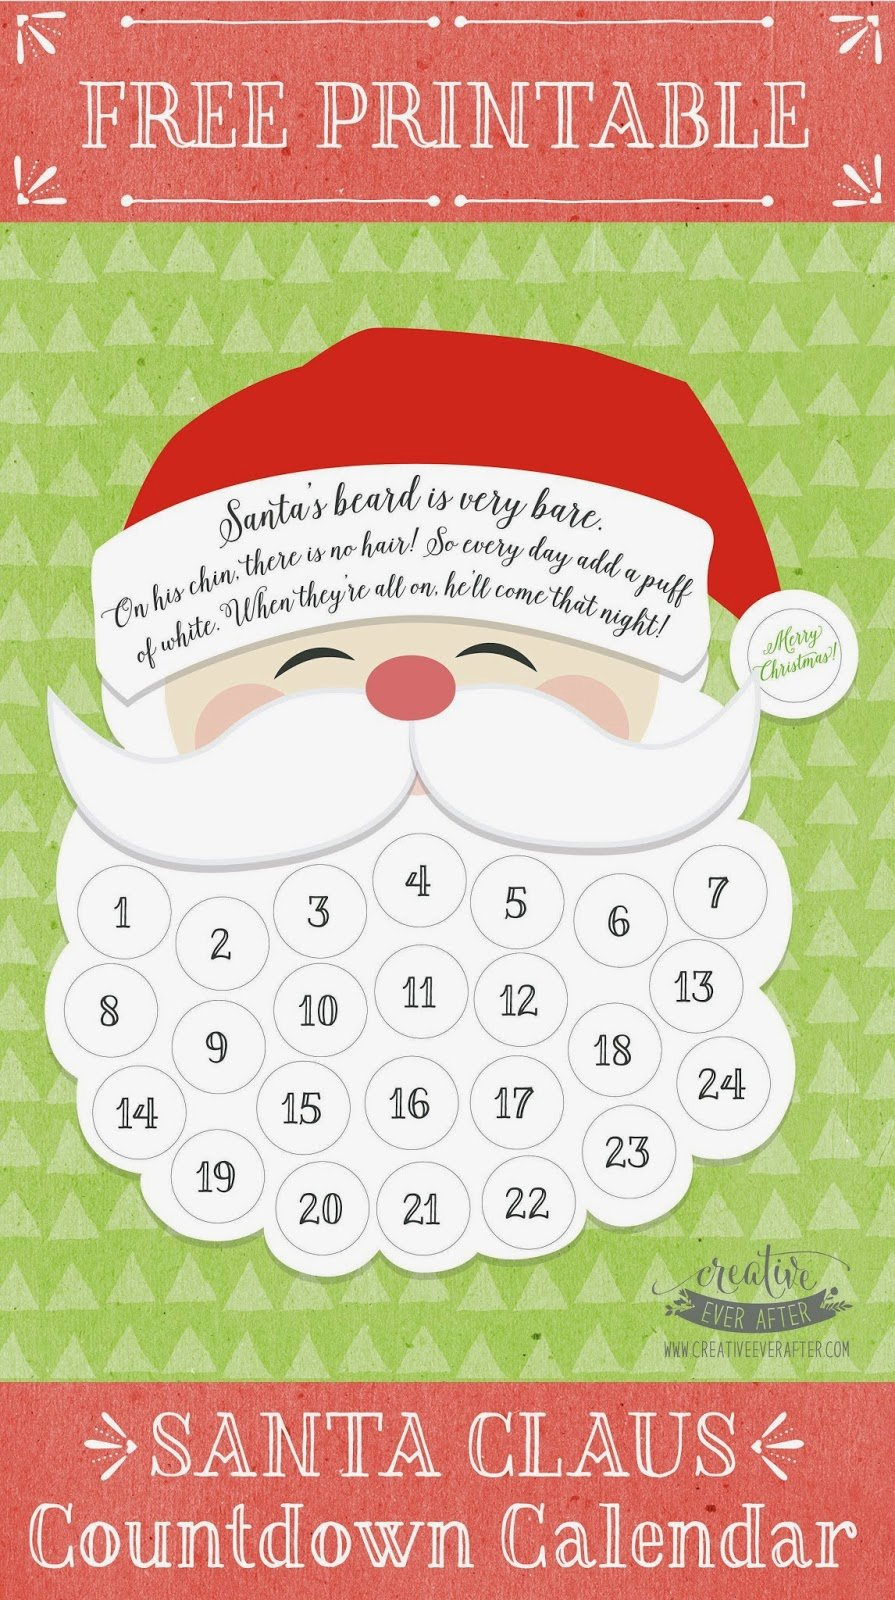 Printable Countdown Calendar Template New Free Printable Santa Claus Beard Countdown Calendar